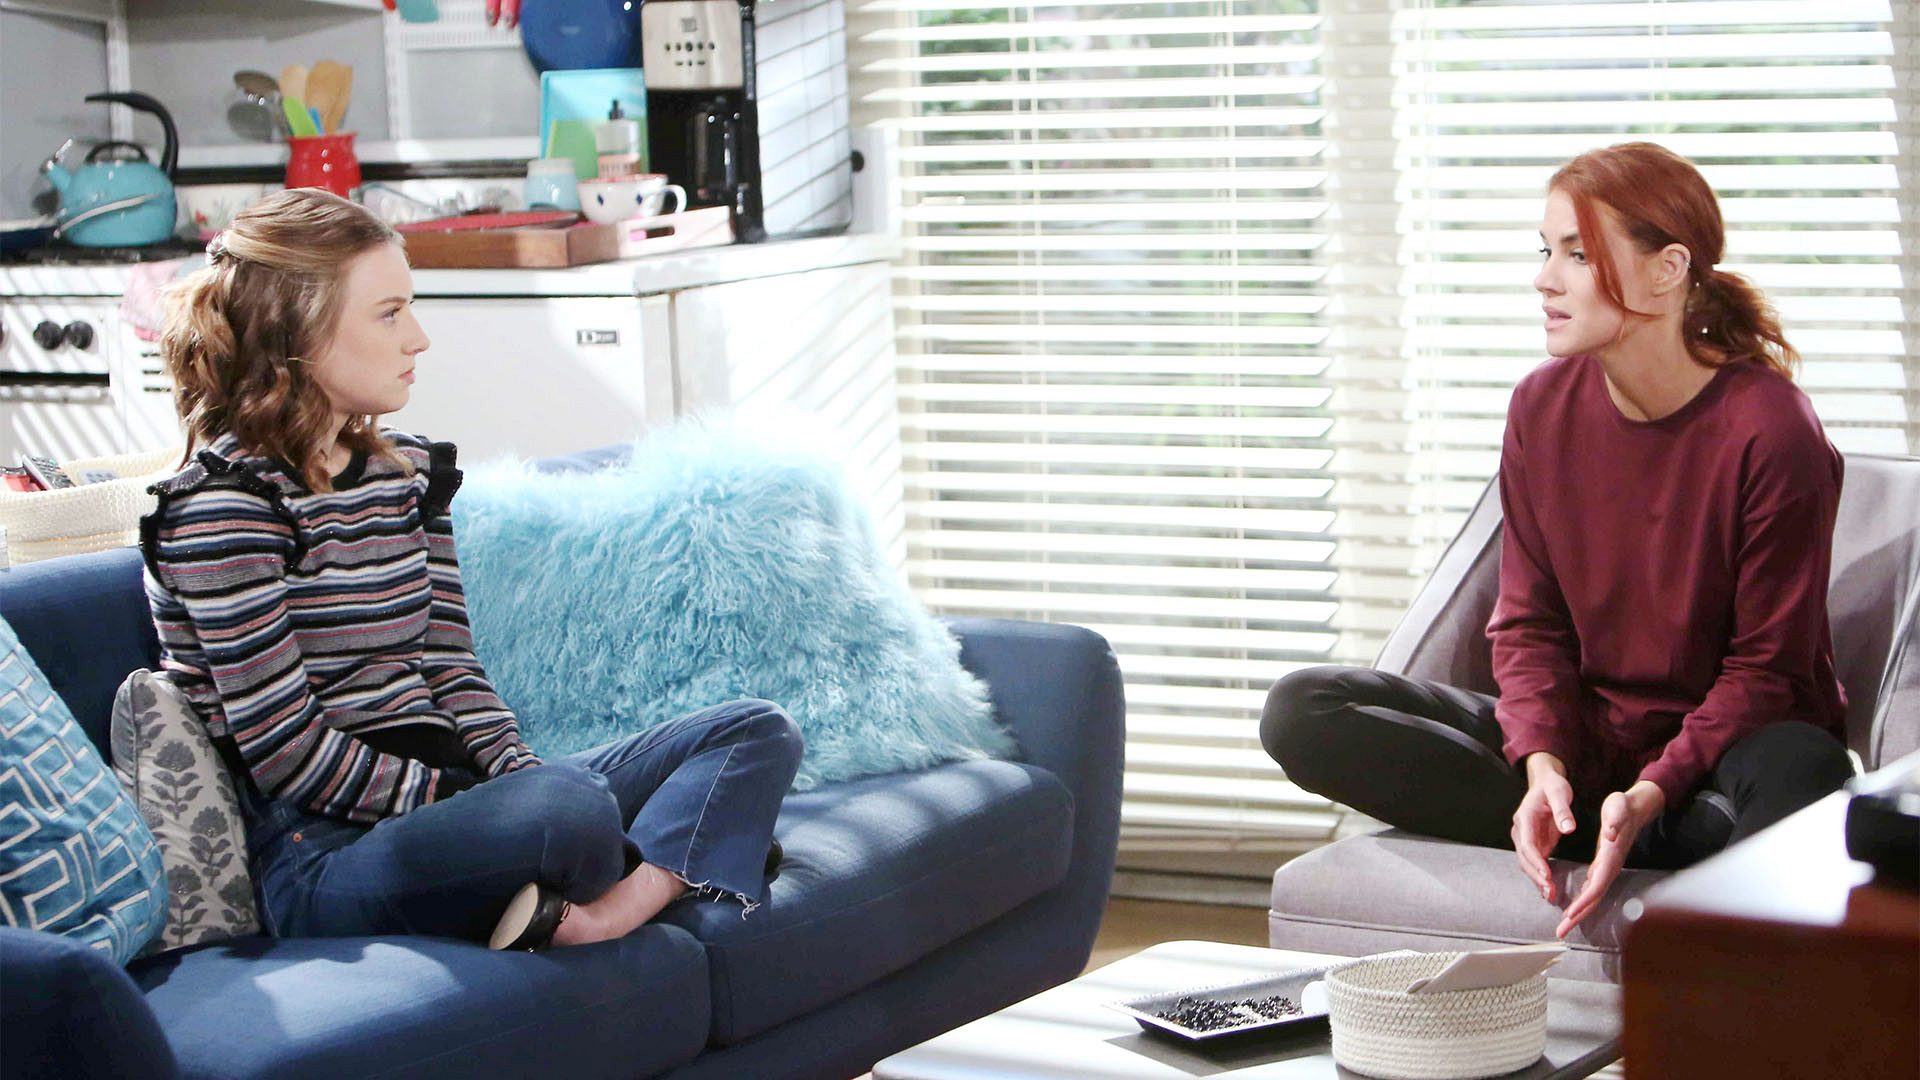 Sally confesses to Coco about Liam buying the Spectra building and gifting it to her.